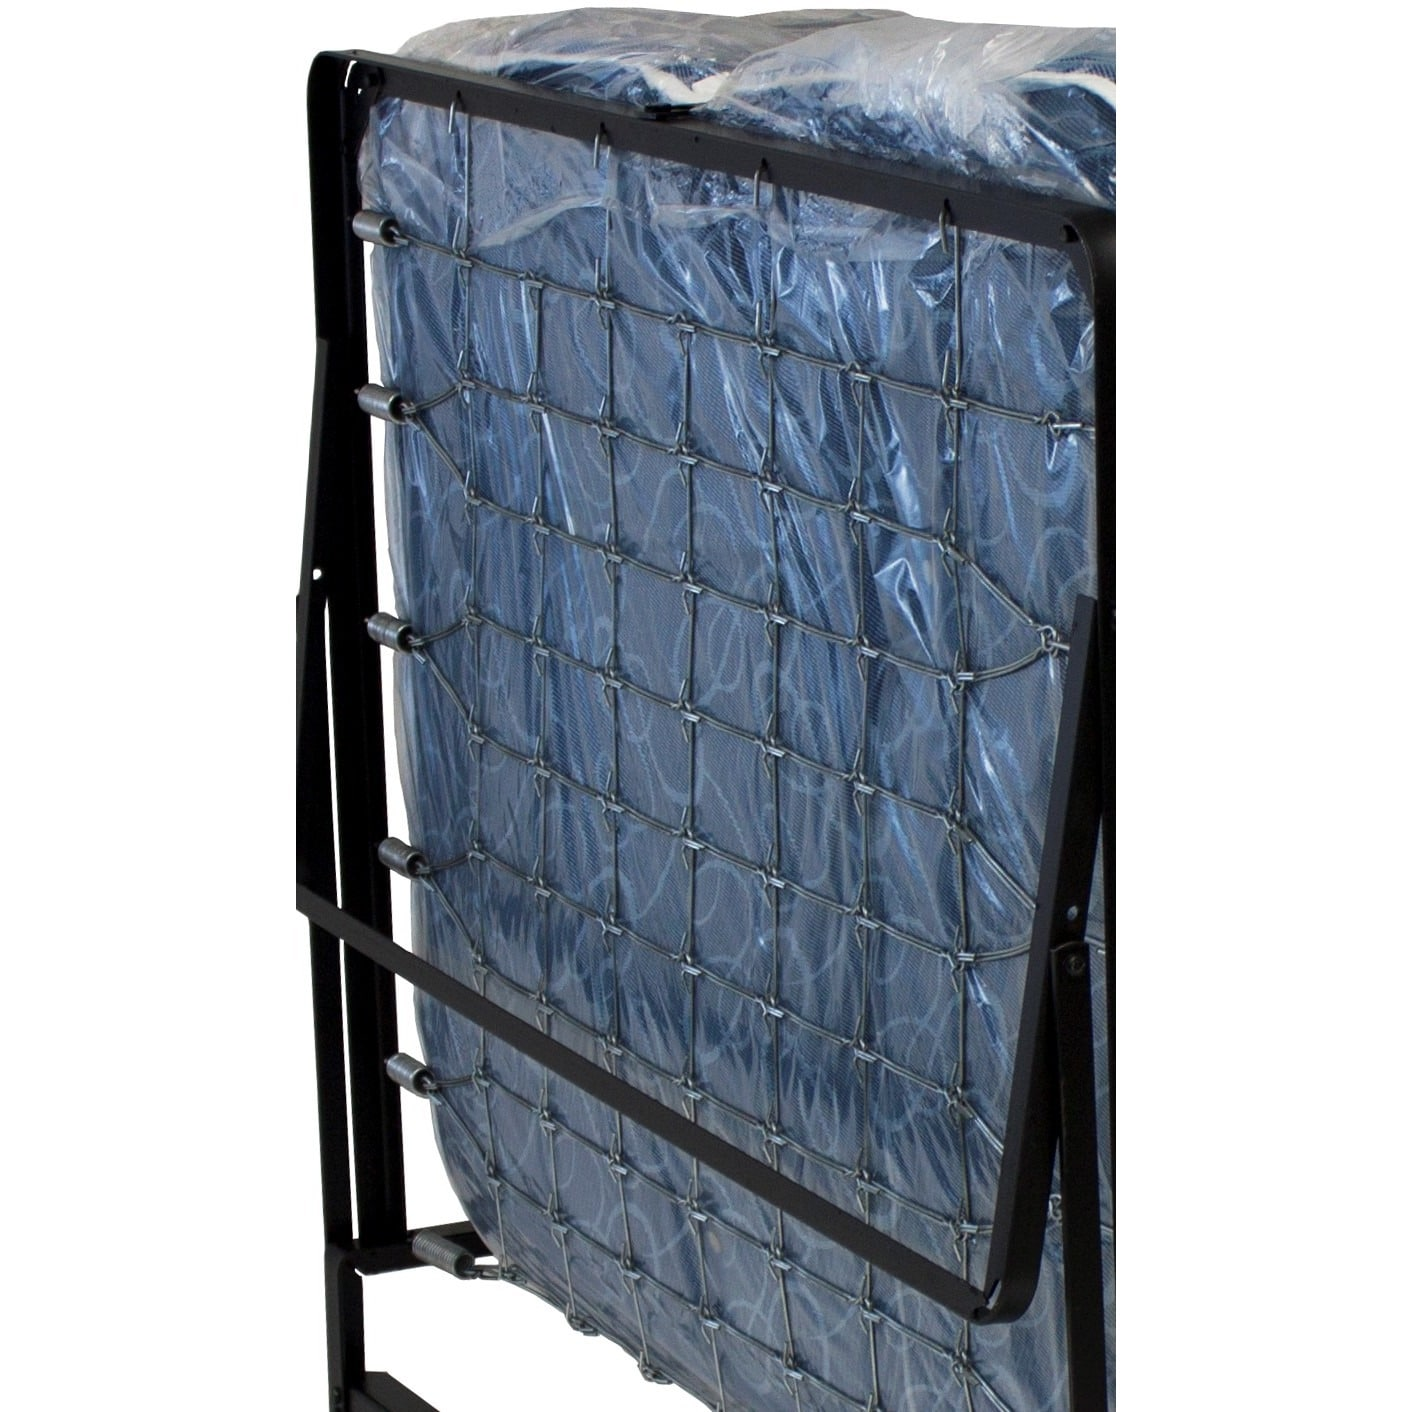 Serta 39 Inch Rollaway With Innerspring Free Shipping Today 10231978